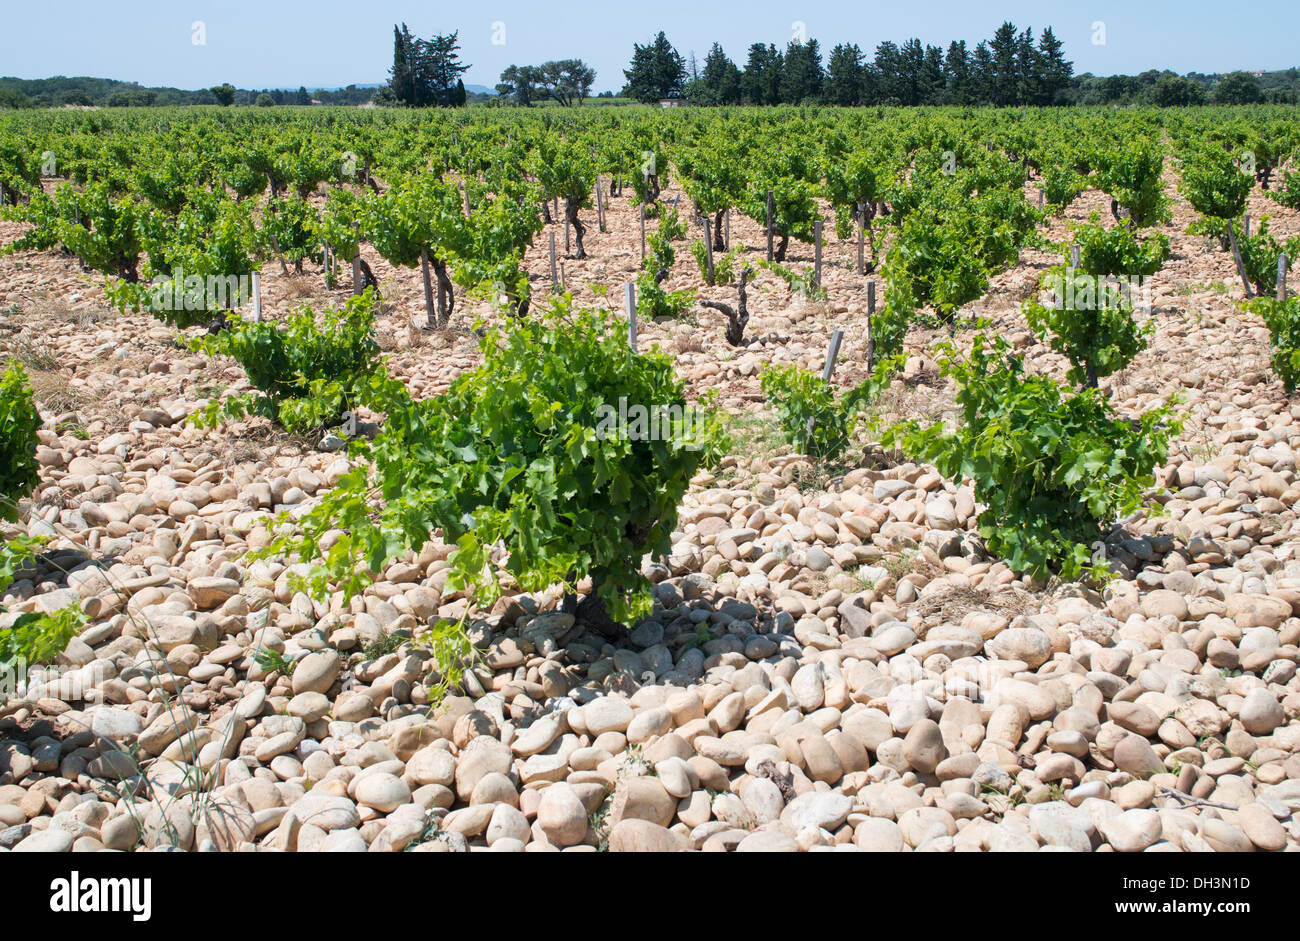 Stones or galets placed on the soil in a  Châteauneuf-du-Pape vineyard, France, Europe - Stock Image